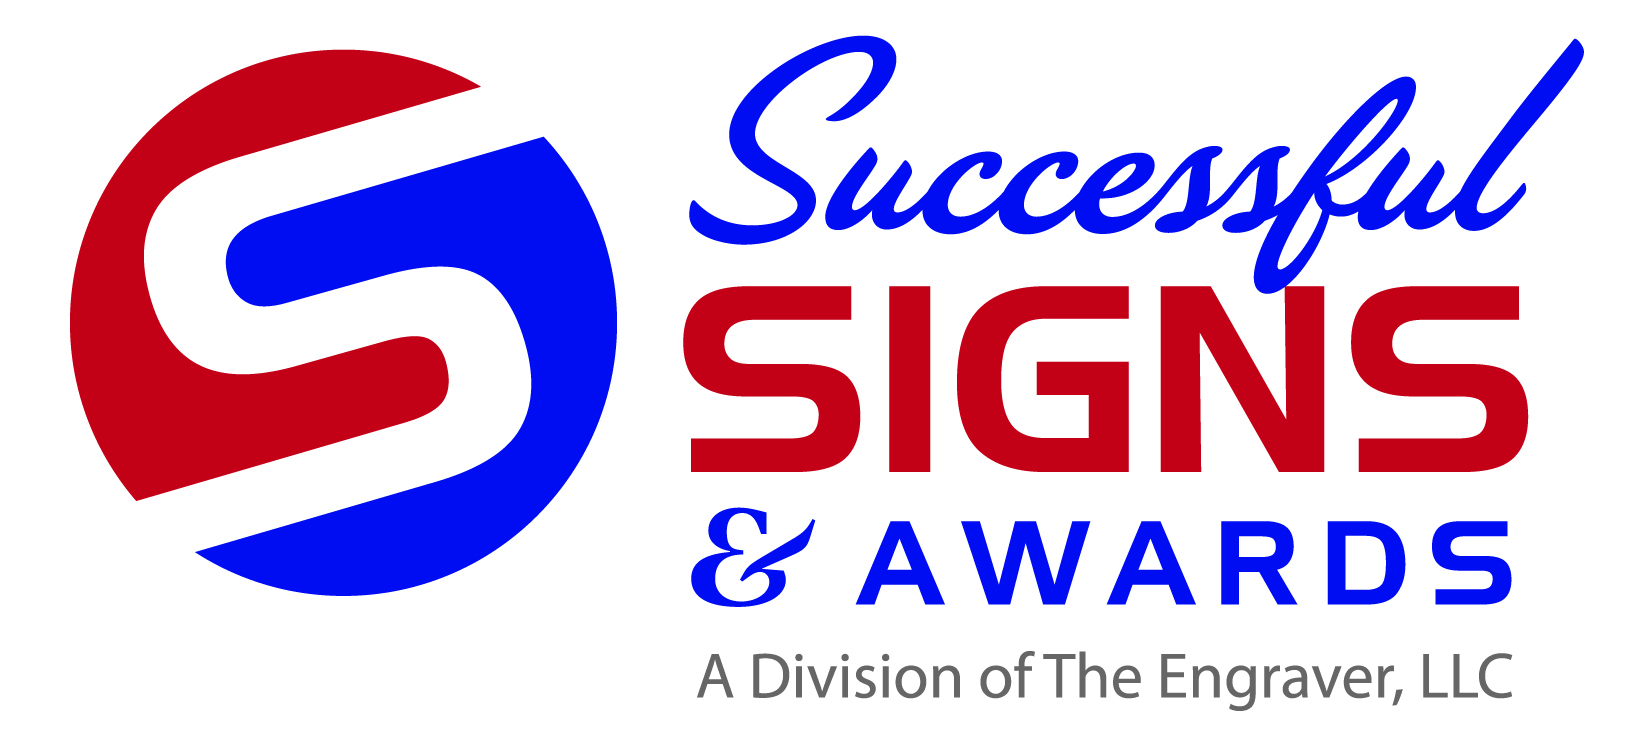 Successful Signs and Awards (A Division of The Engraver, LLC)